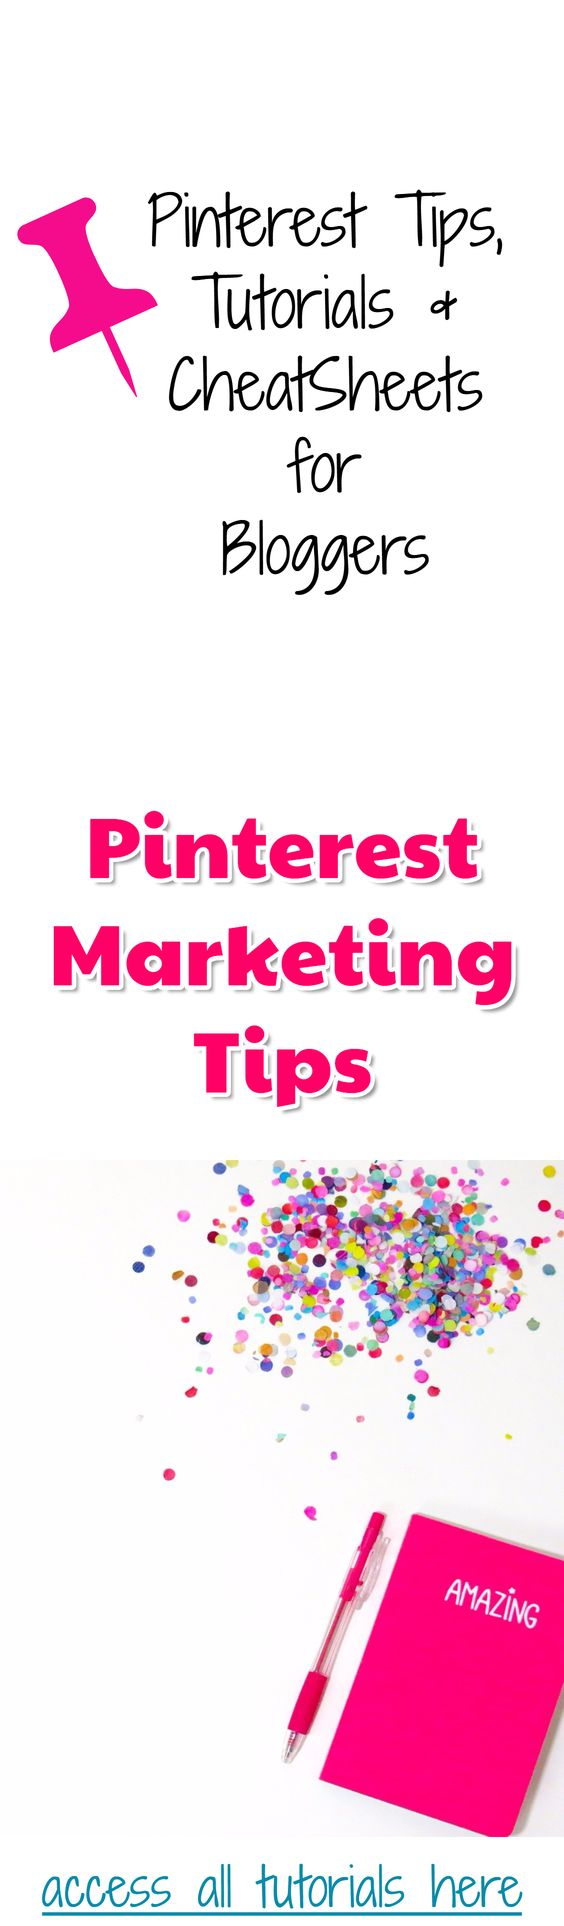 Pinterest Marketing resources for bloggers. Learn the best Pinterest marketing tips and tricks, get Pinterest tutorials, learn Pinterest strategies and get your Pinterest Marketing CheatSheet.